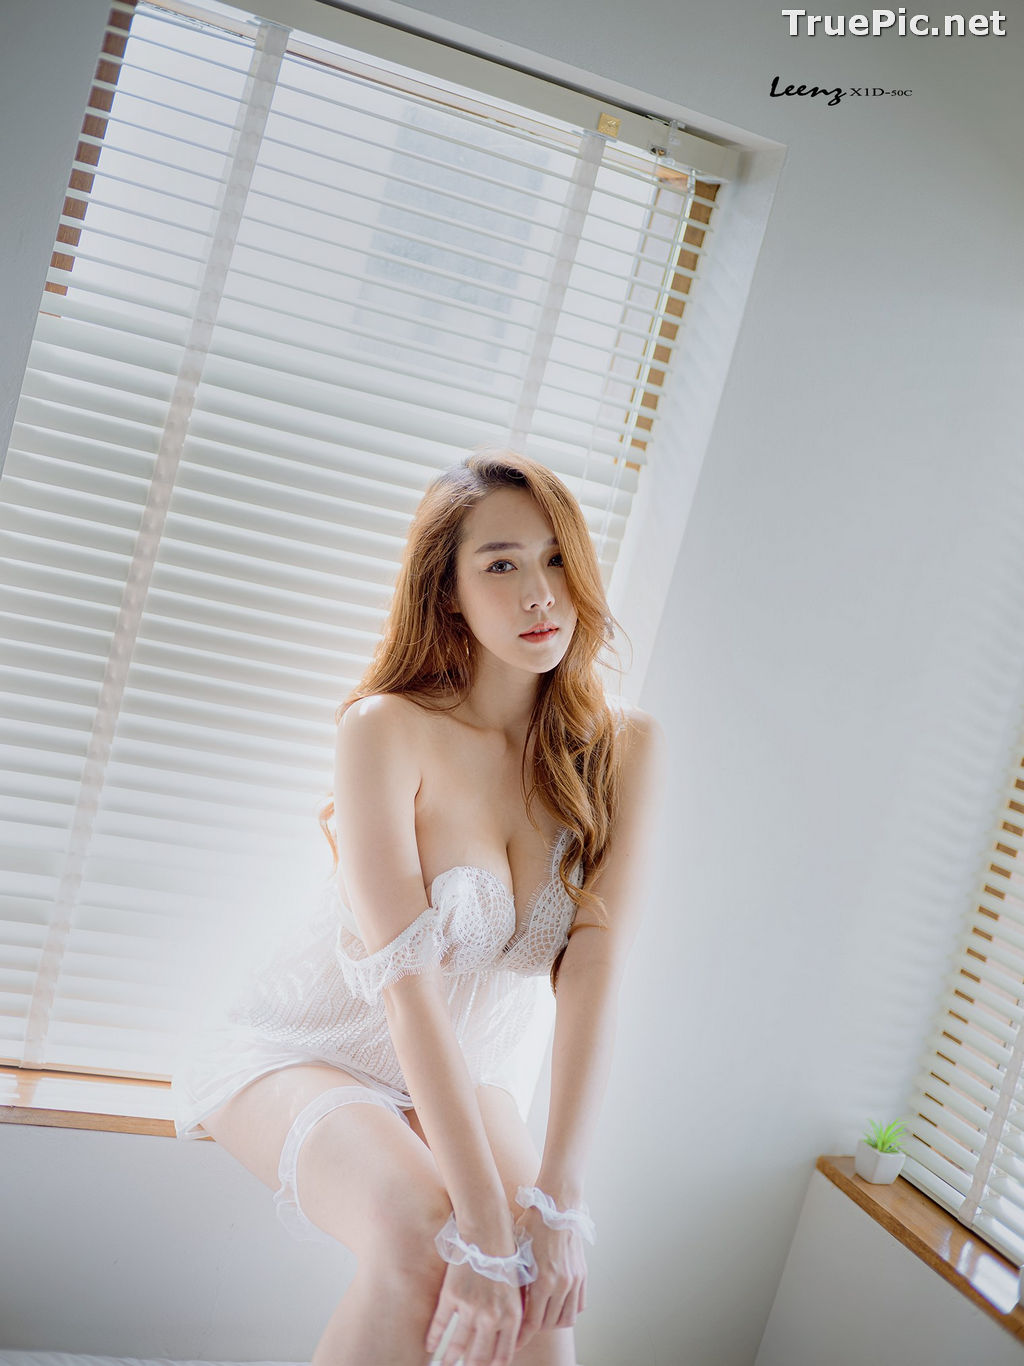 Image Thailand Model - Mananya Benjachokanant - Beautiful In White - TruePic.net - Picture-3